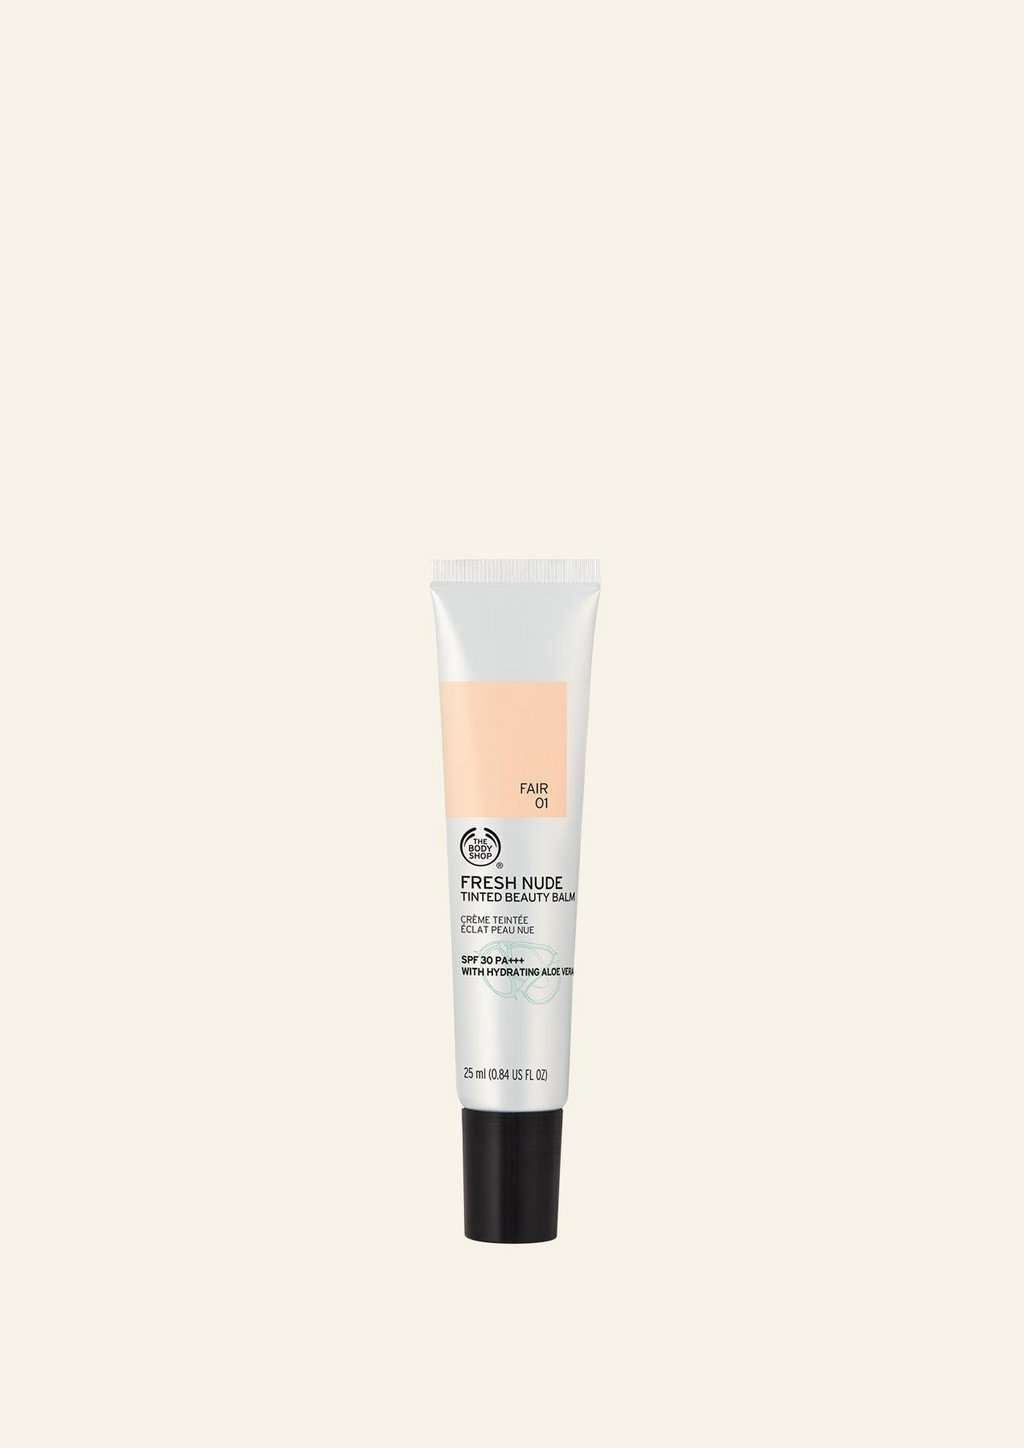 The Body Shop Fresh Nude Tinted Beauty Balm